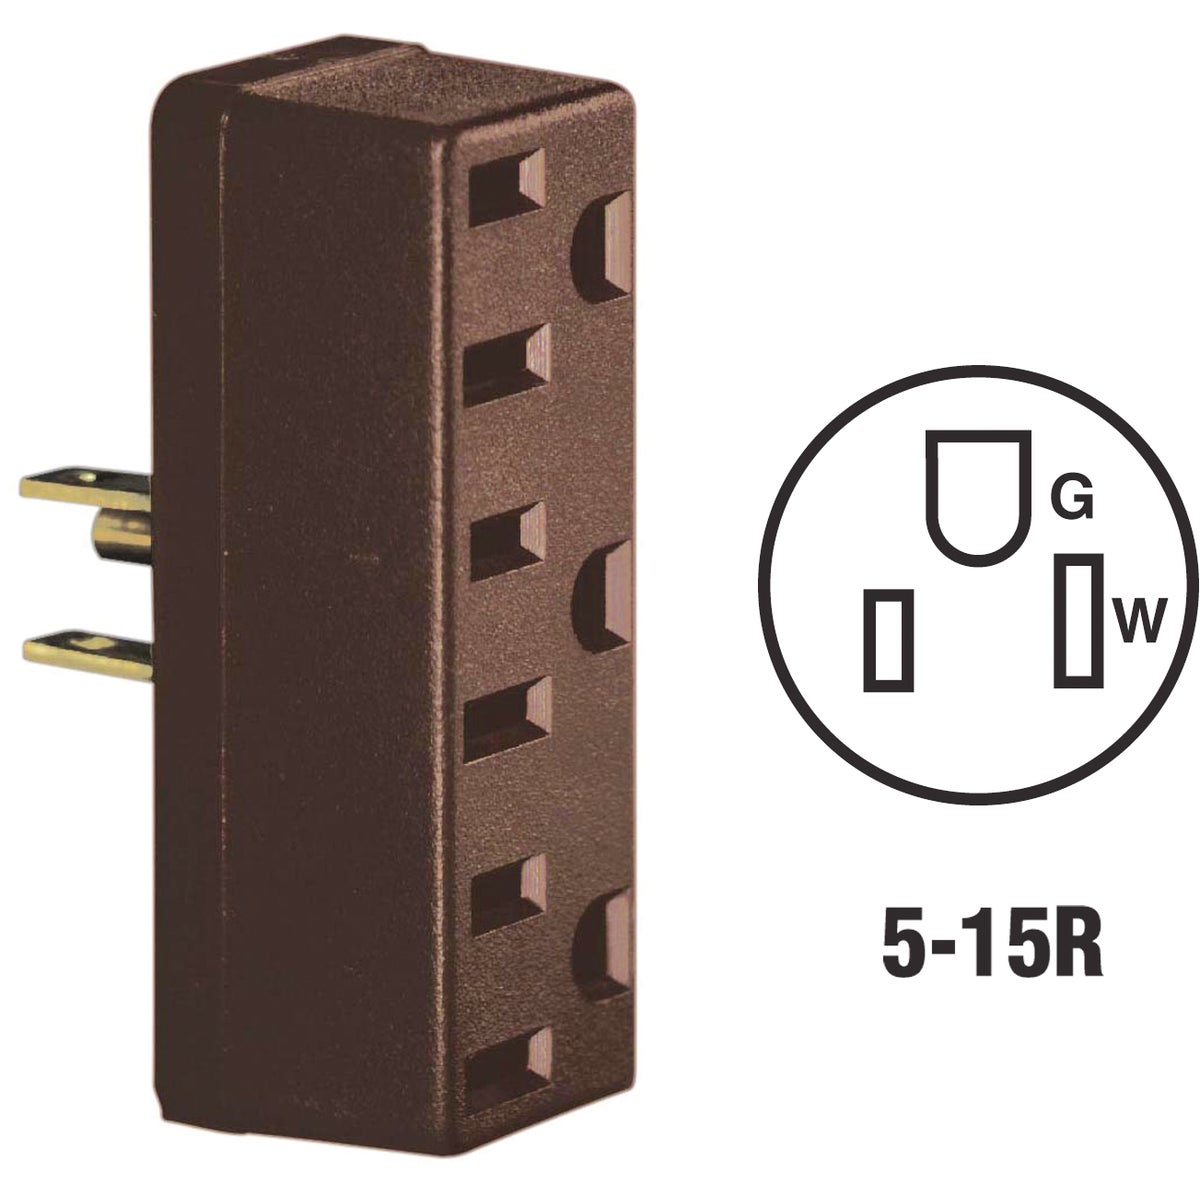 BRN GRND TRIPLE TAP - 005-697 by Leviton Mfg Co